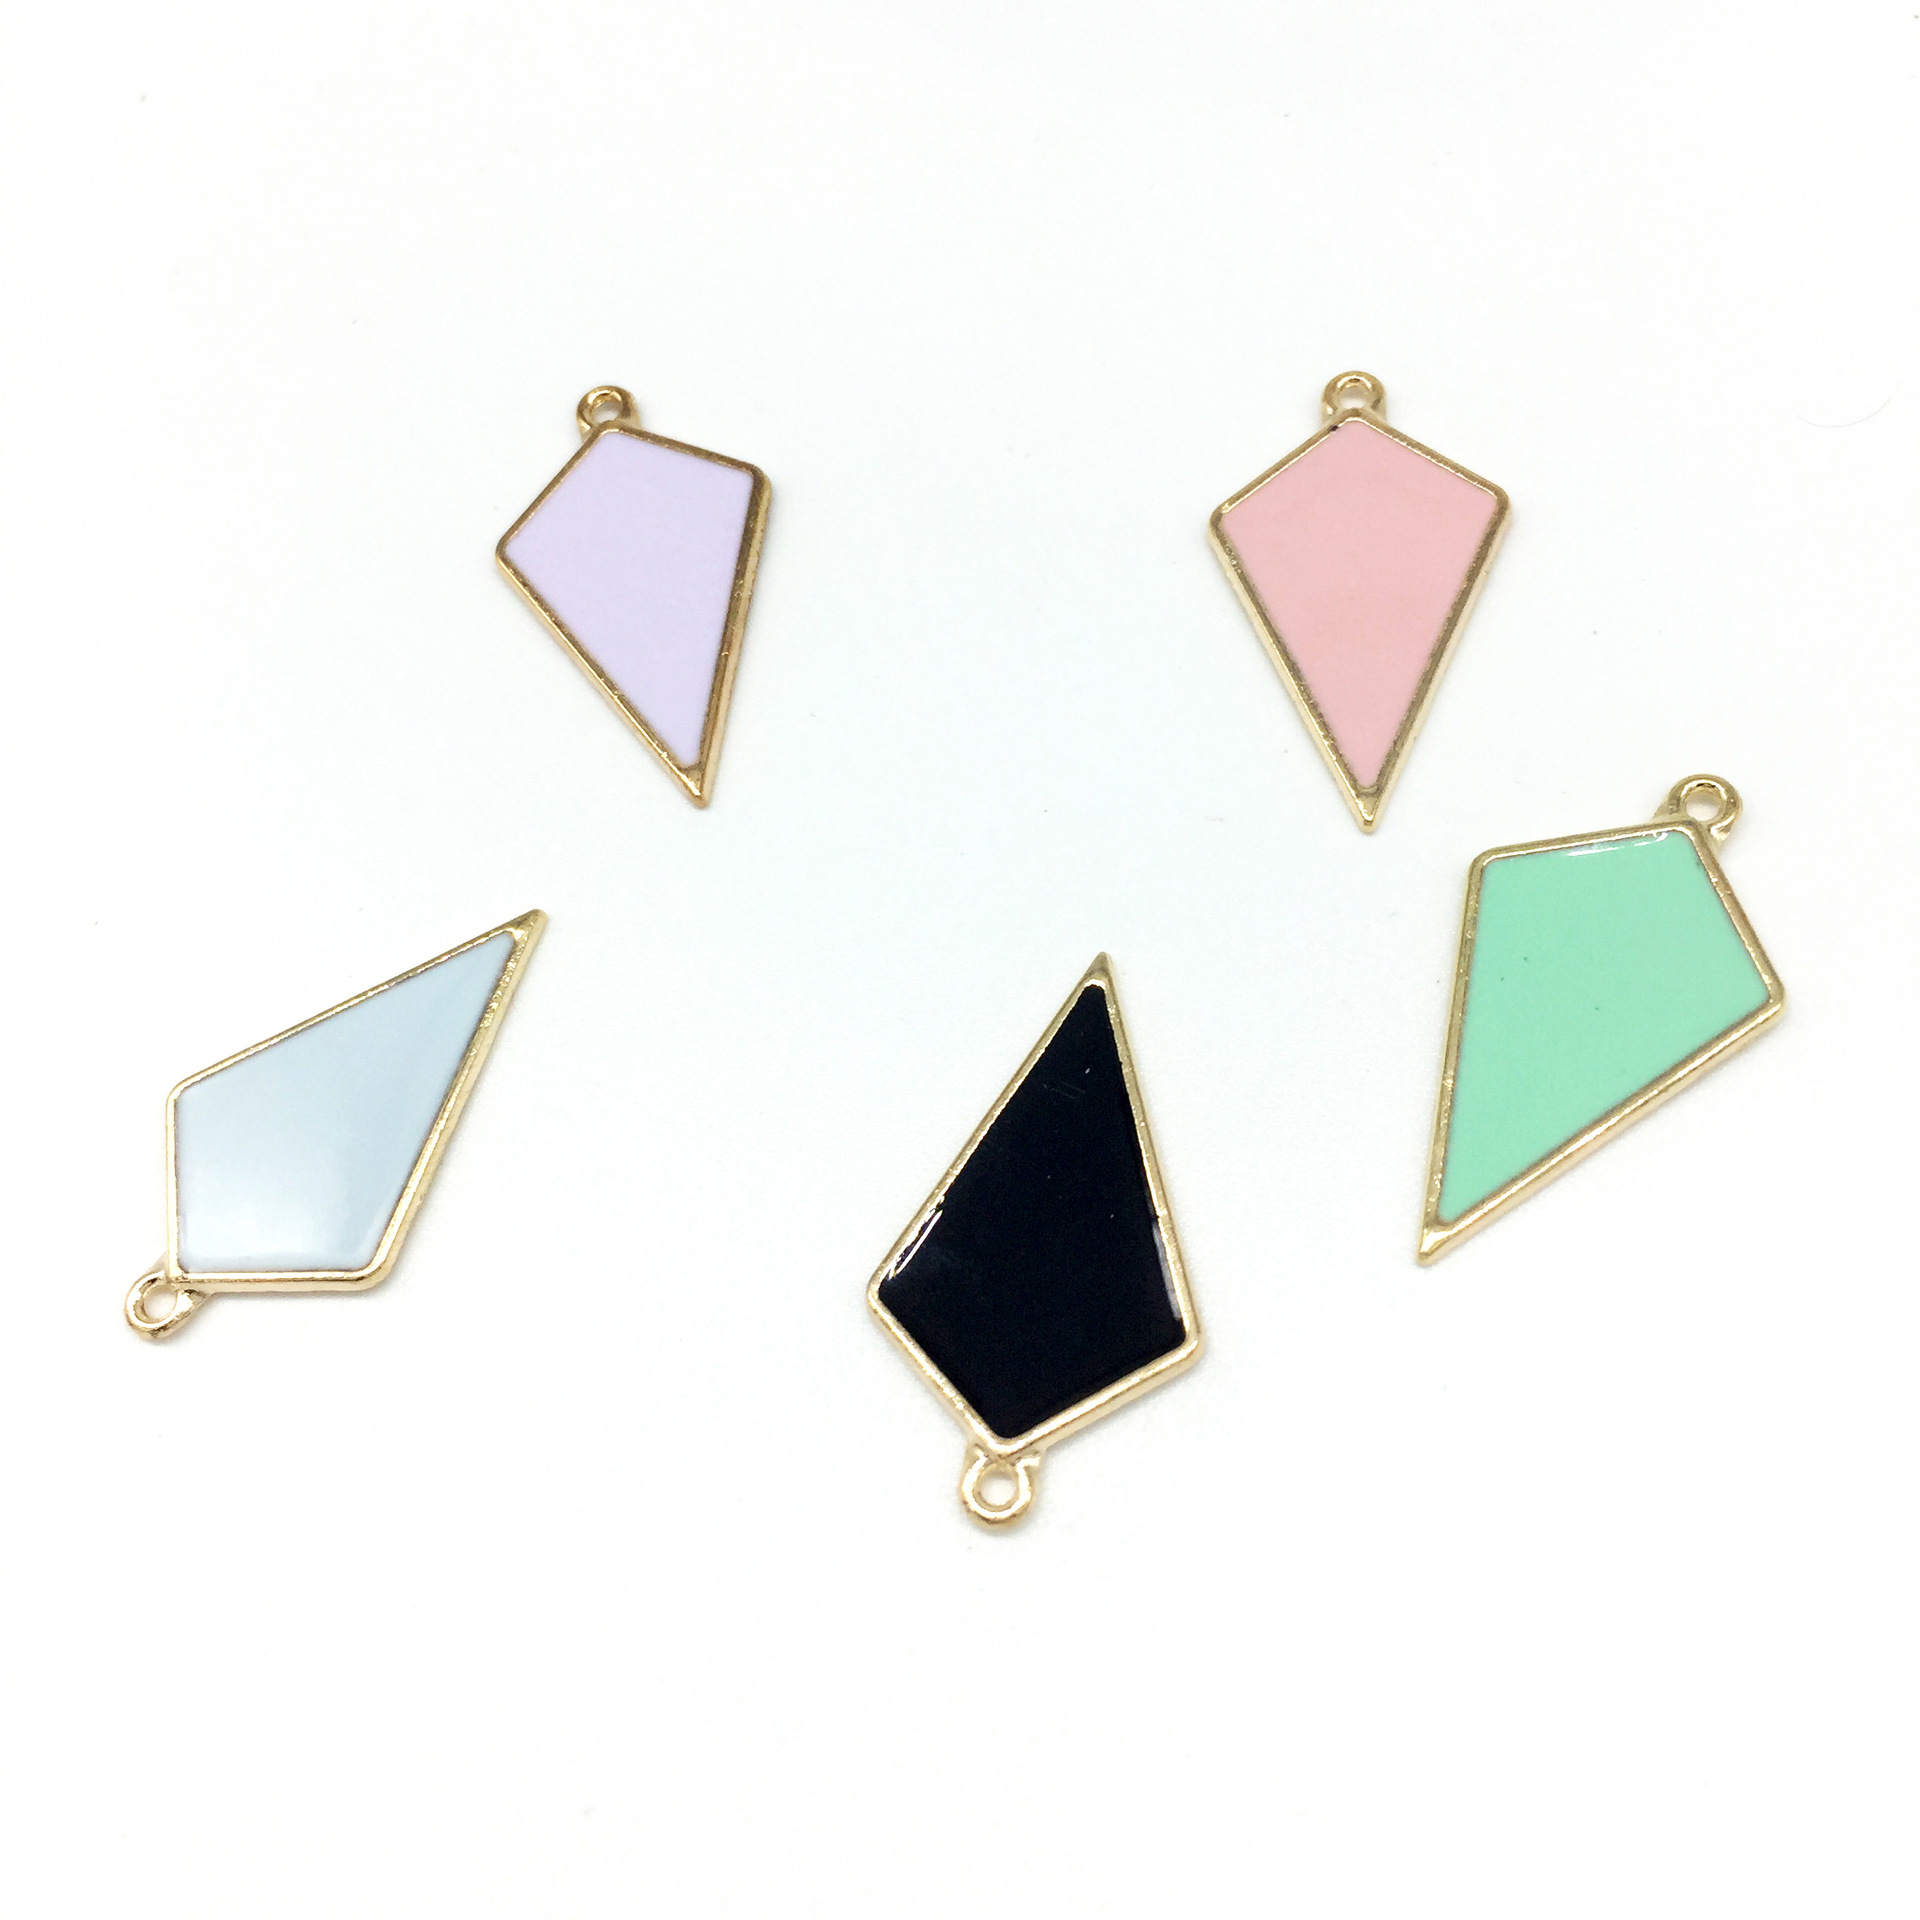 20pcs Wooden Triangle Charm for Jewelry Making Crafting Earrings Drop Charms